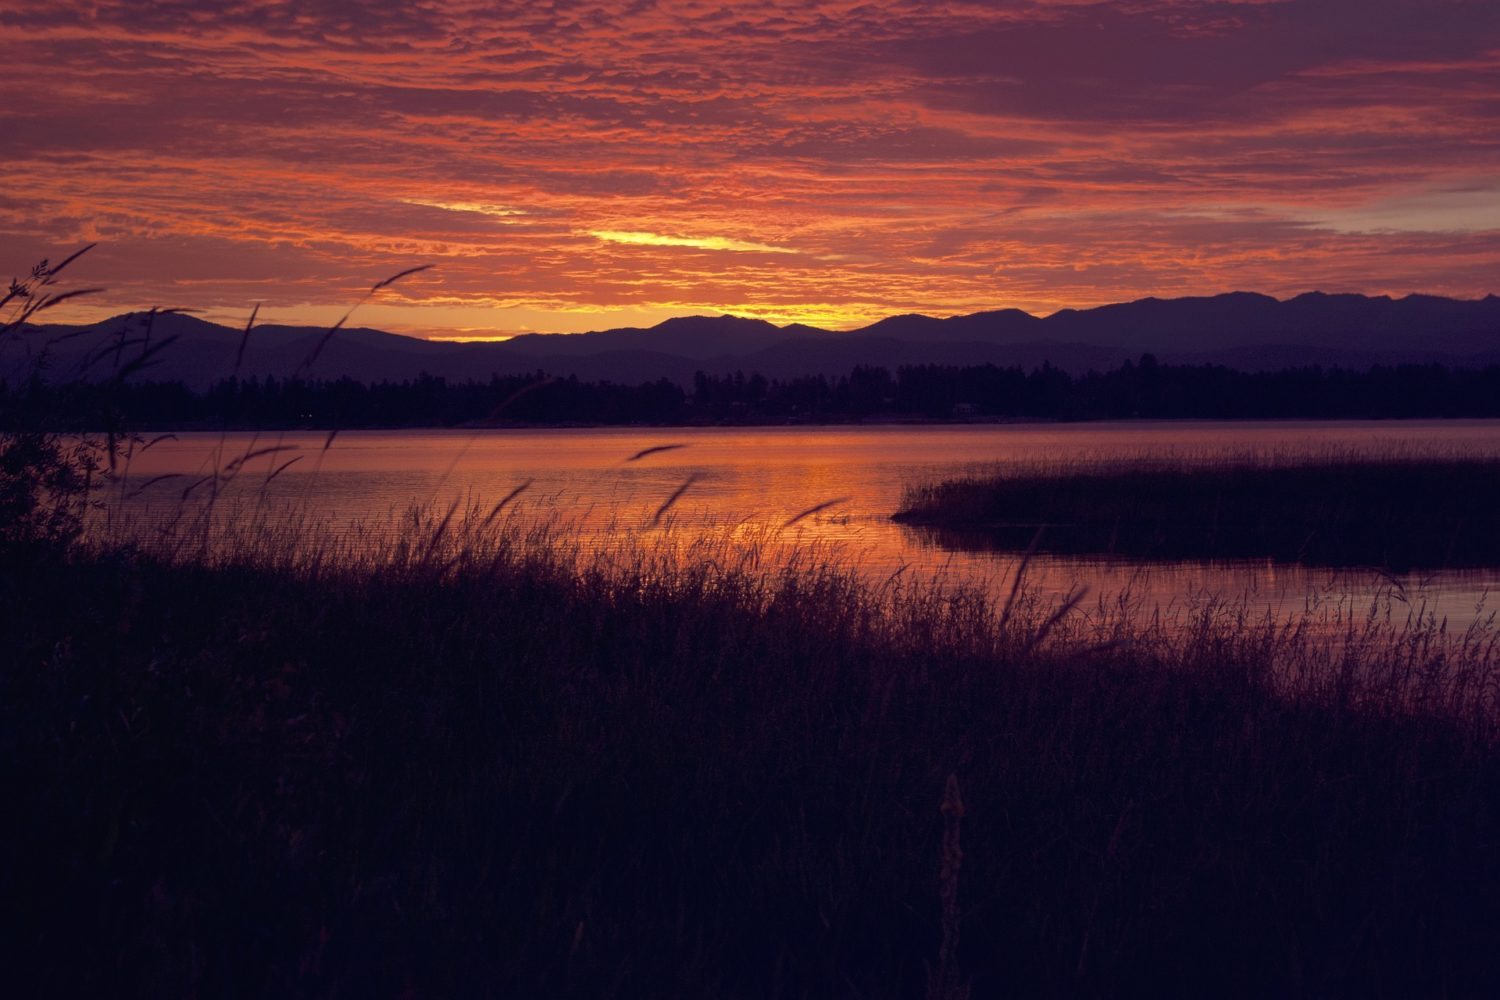 Sunset on the Lake Coeur d'Alene is truly spectacular - you won't want to leave!